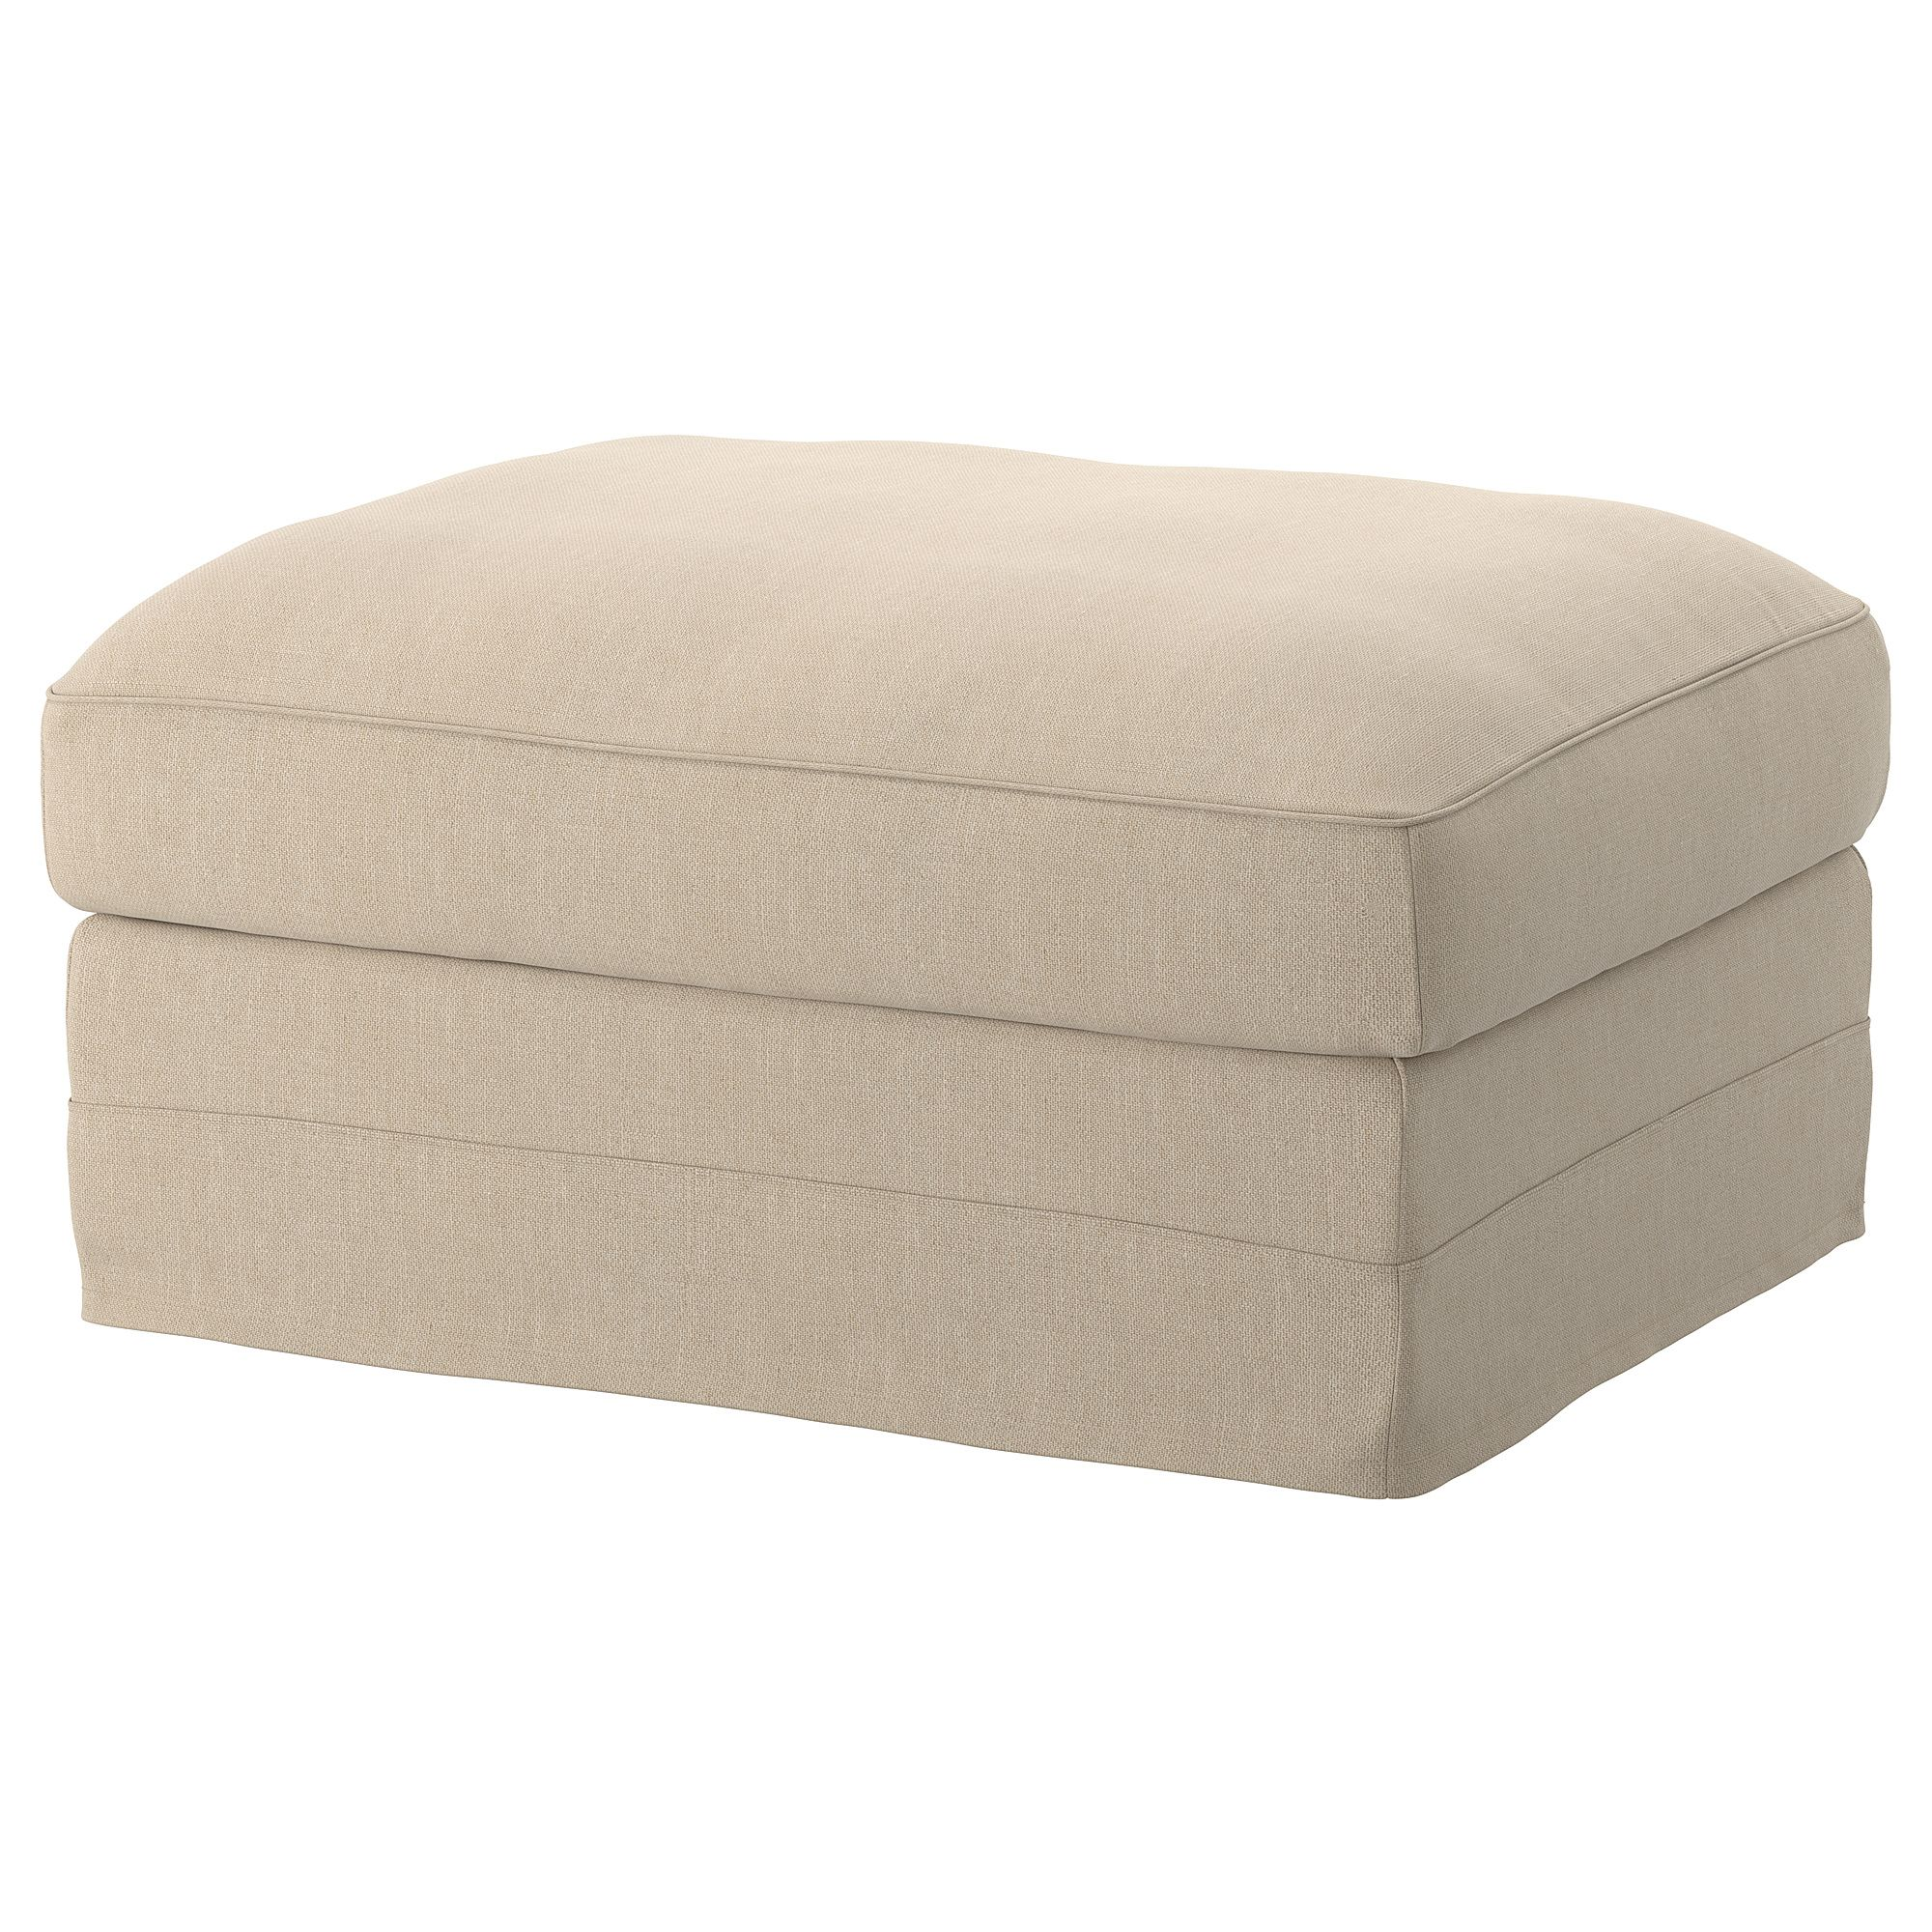 Ikea Gronlid Sporda Natural Ottoman With Storage Products In 2019 Storage Footstool Fabric Ottoman Ikea